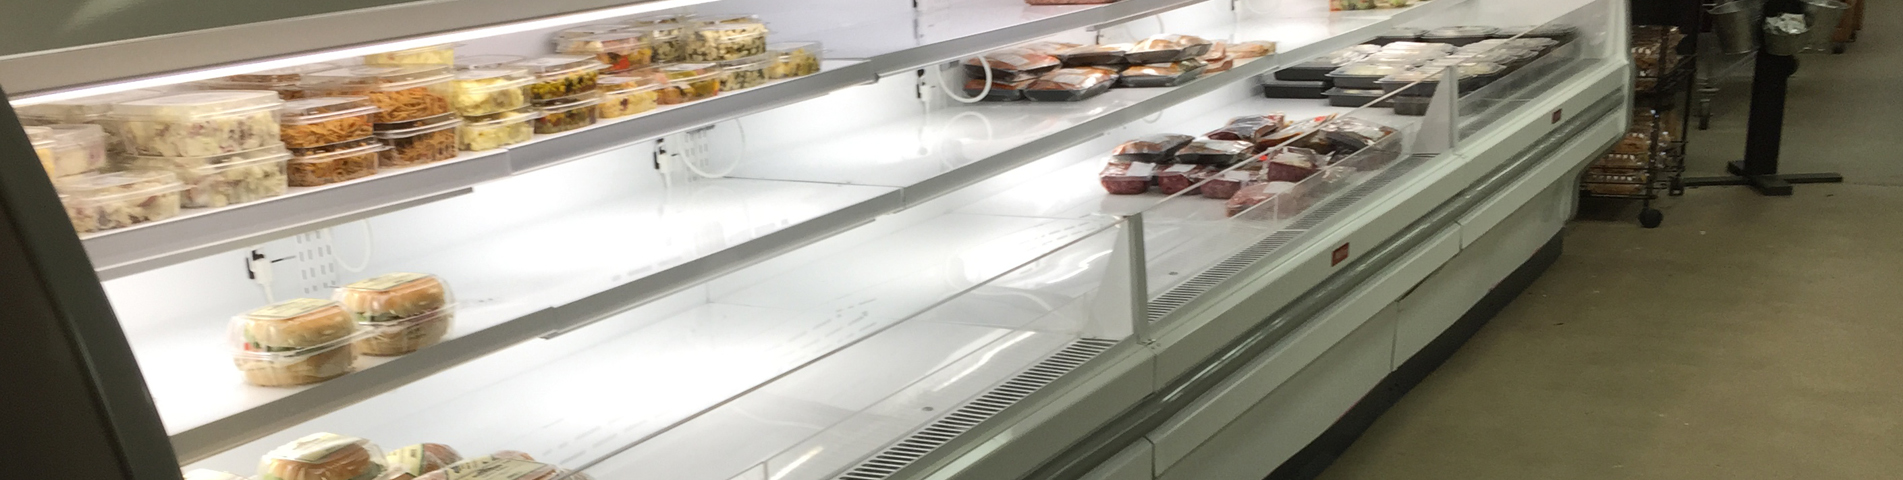 Commercial Refrigeration Service in Westminster, Massachusetts